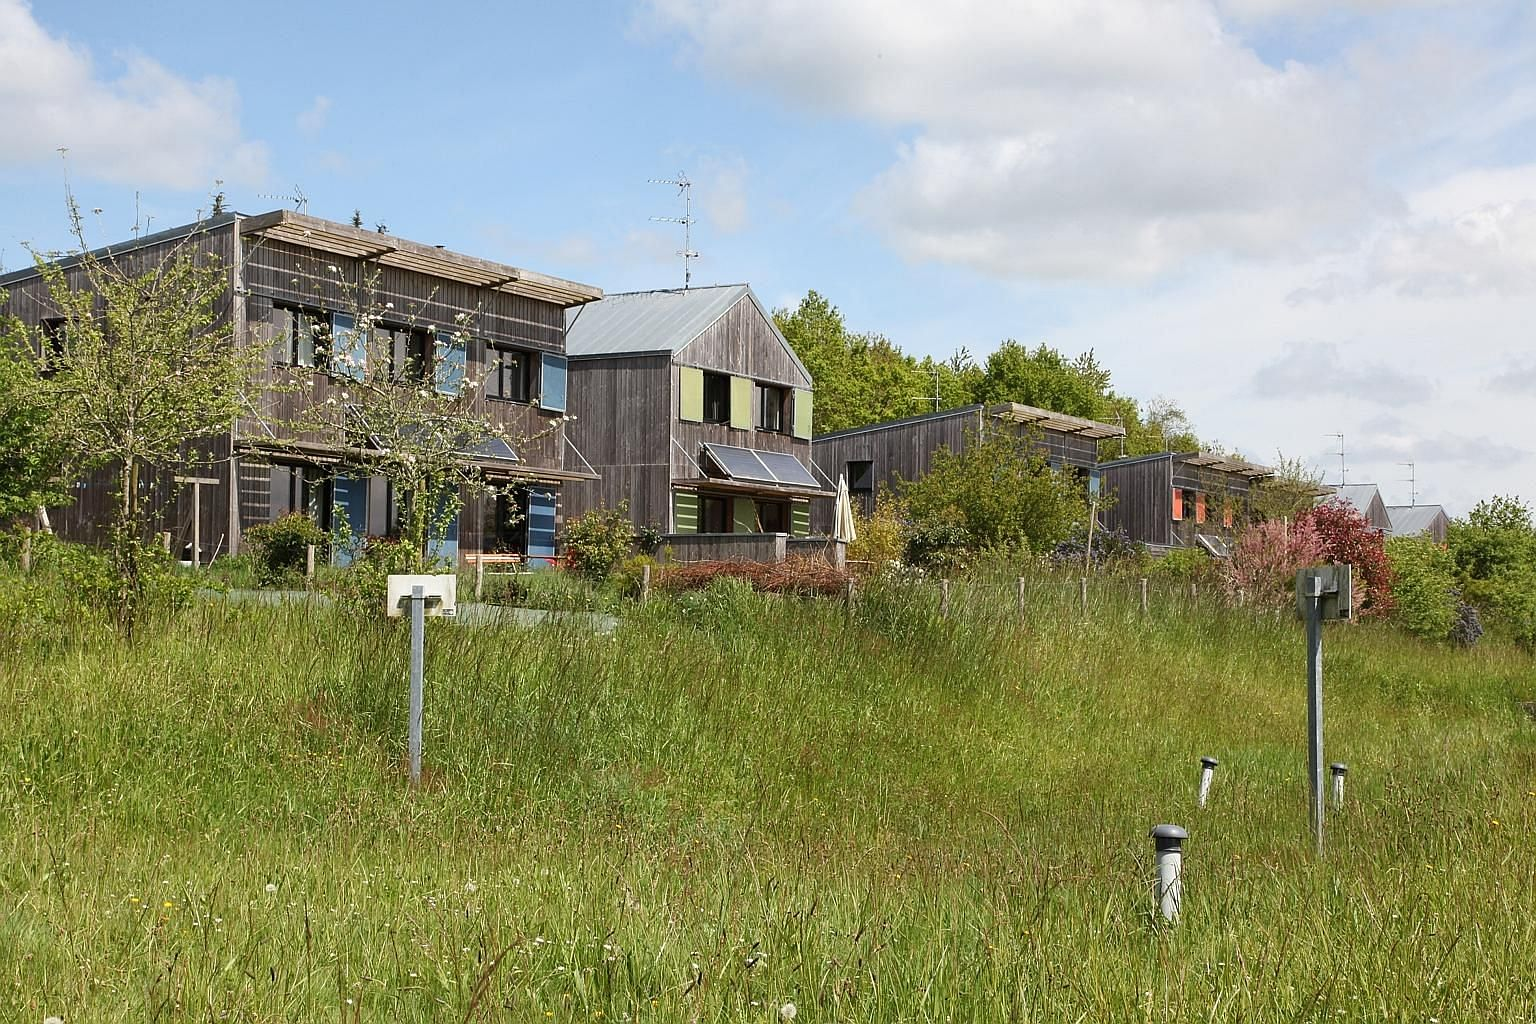 The hamlet, La Pelousiere, built in 2011, is made up of energy-efficient wooden houses equipped with solar panels.